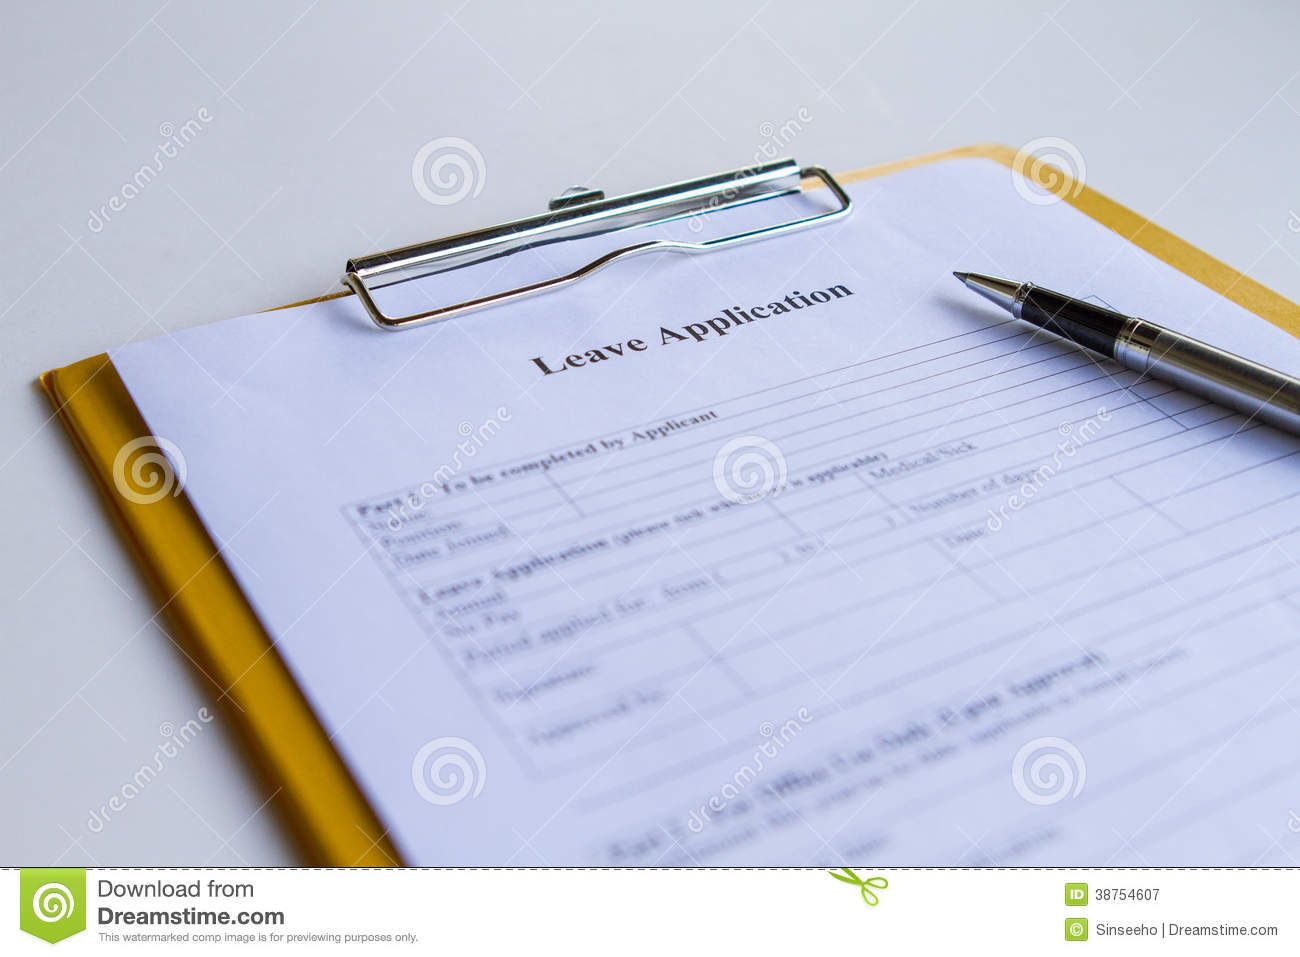 leave application form royalty stock photography image leave application form